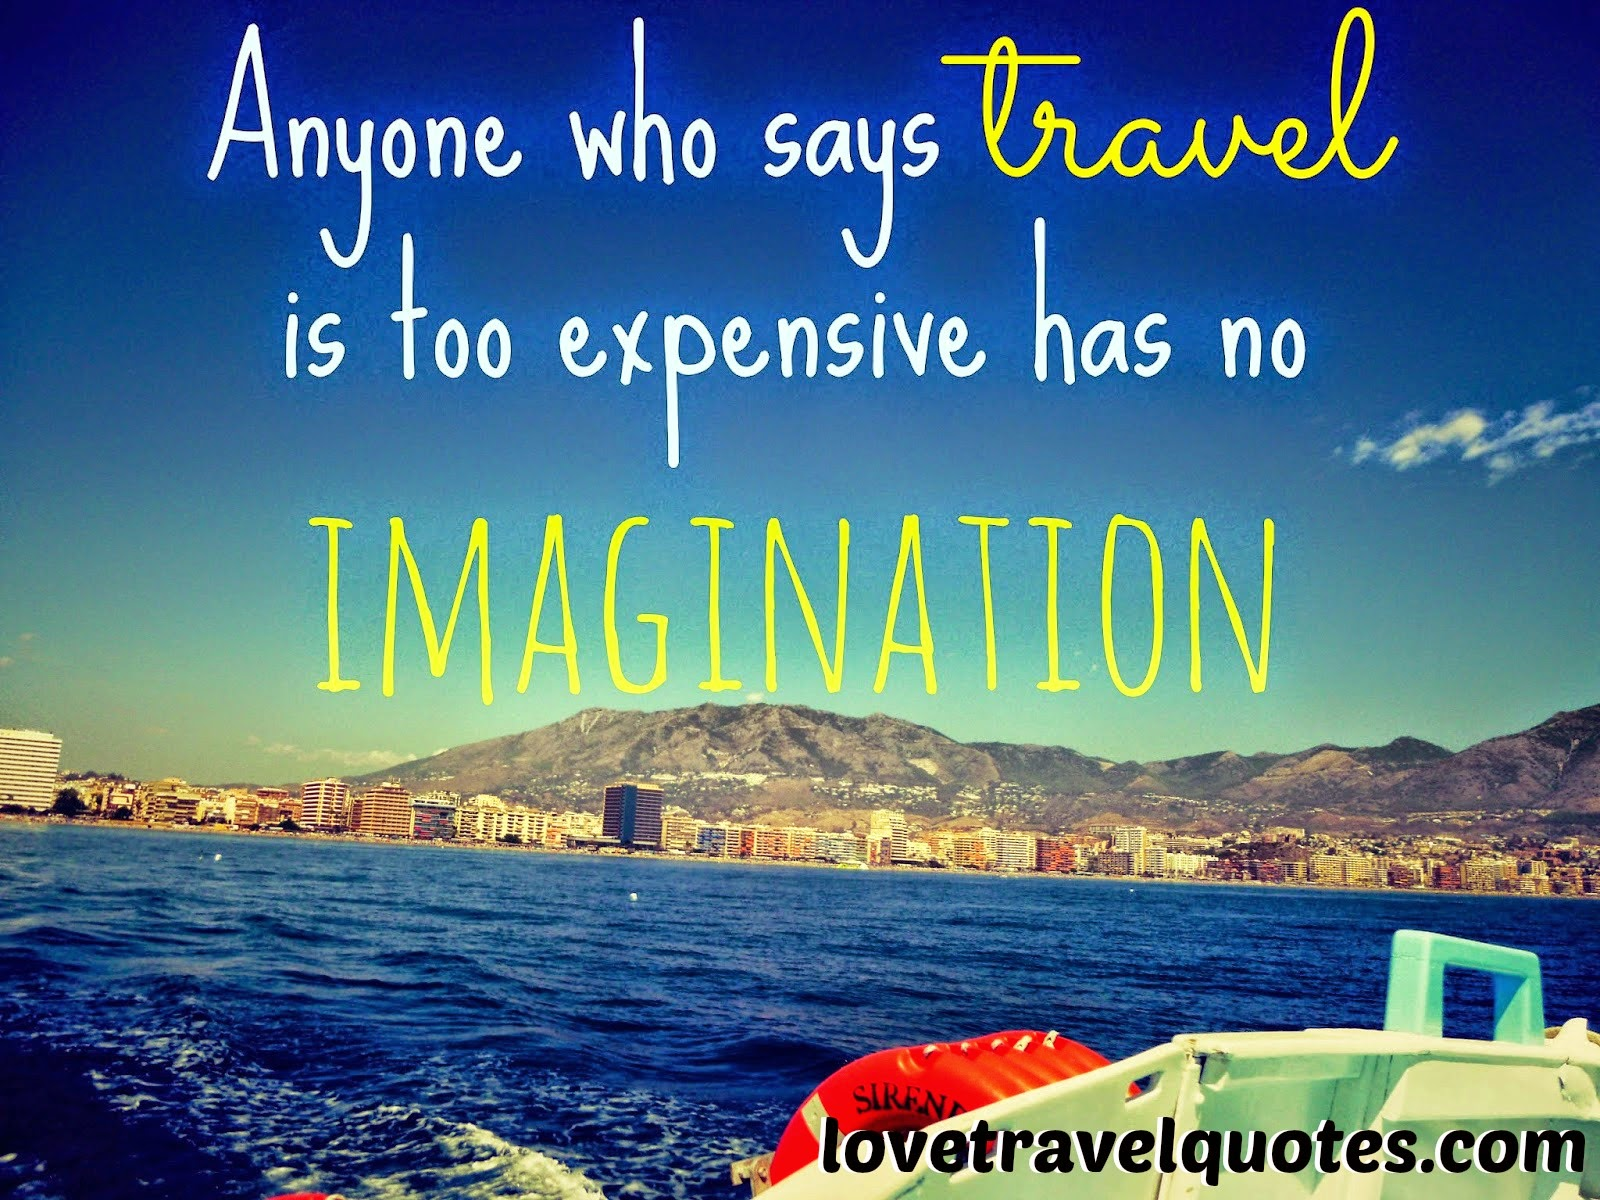 Anyone who says Travel is too expensive has no imagination